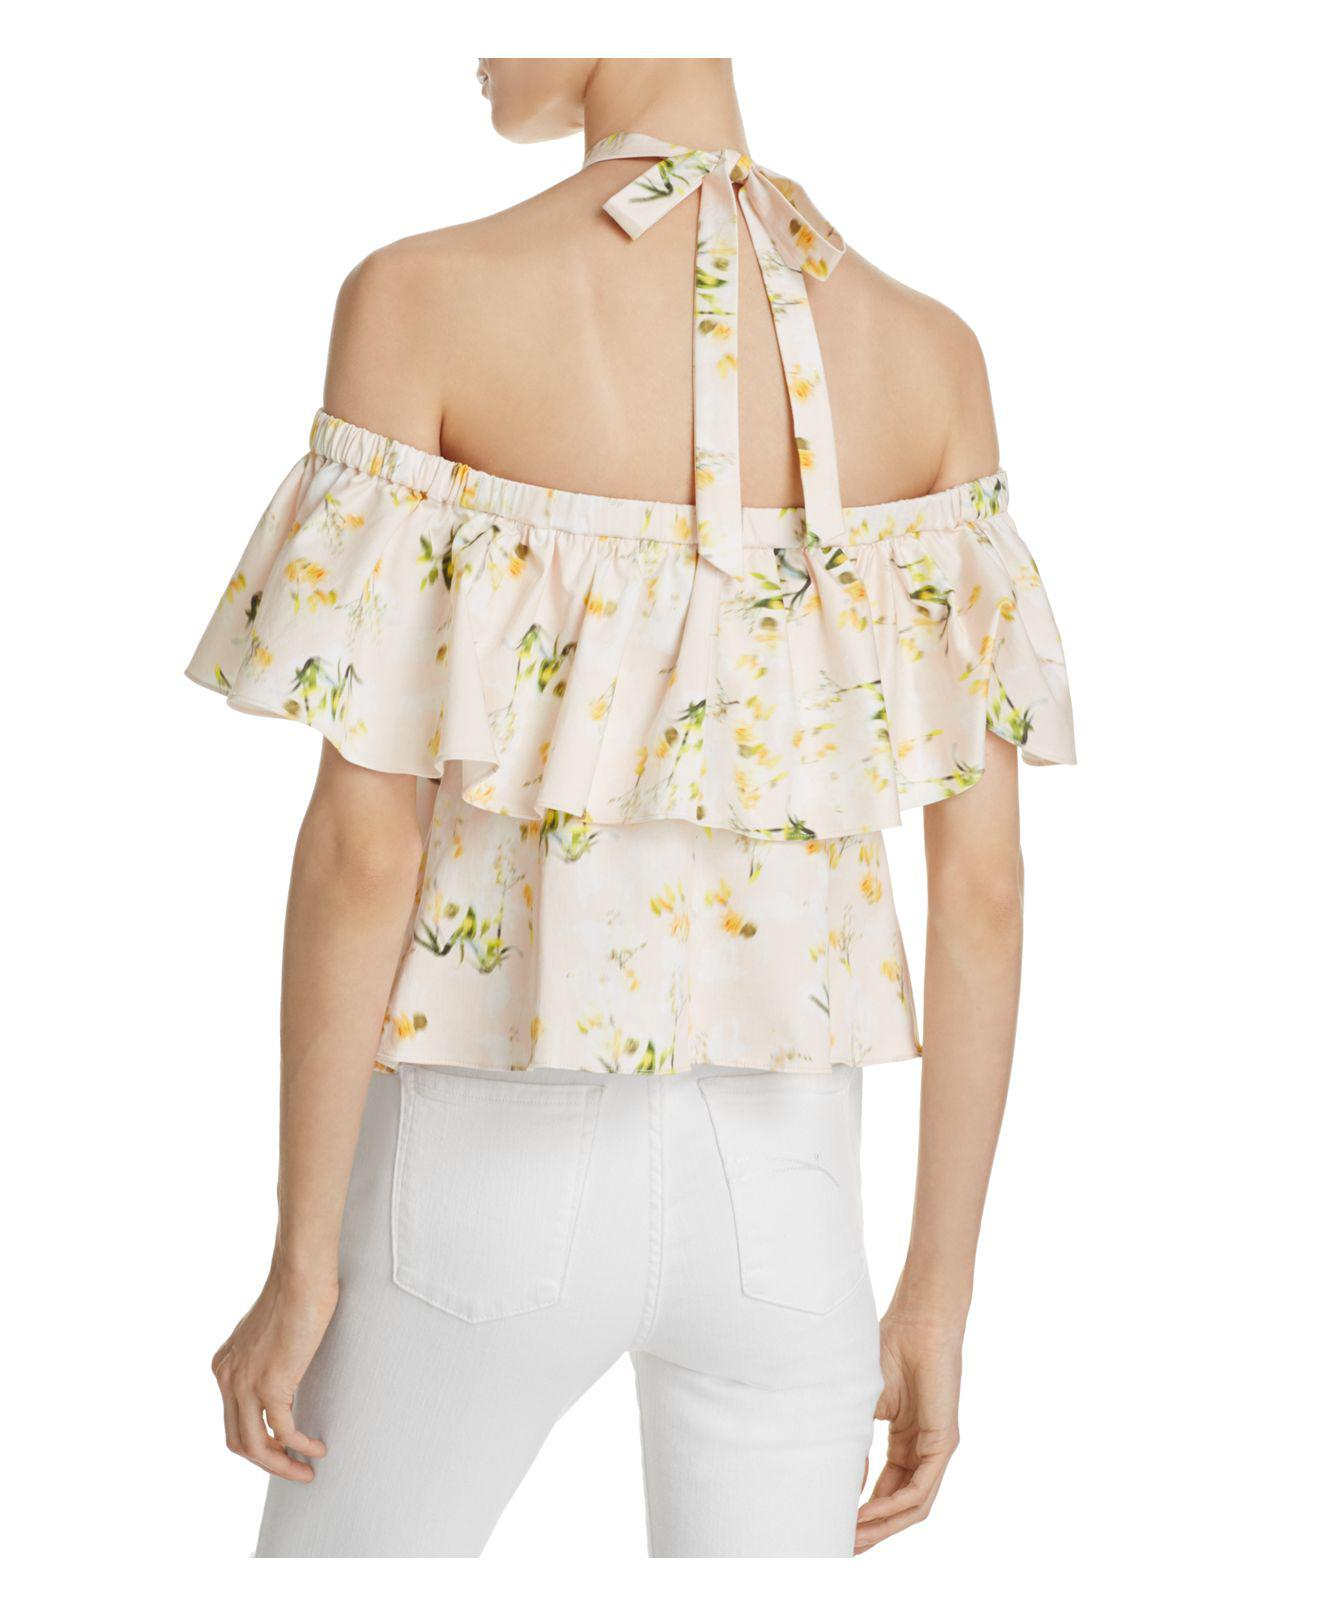 a76a0e40f1728 Lyst - Rebecca Taylor Off-the-shoulder Firefly Top in Natural